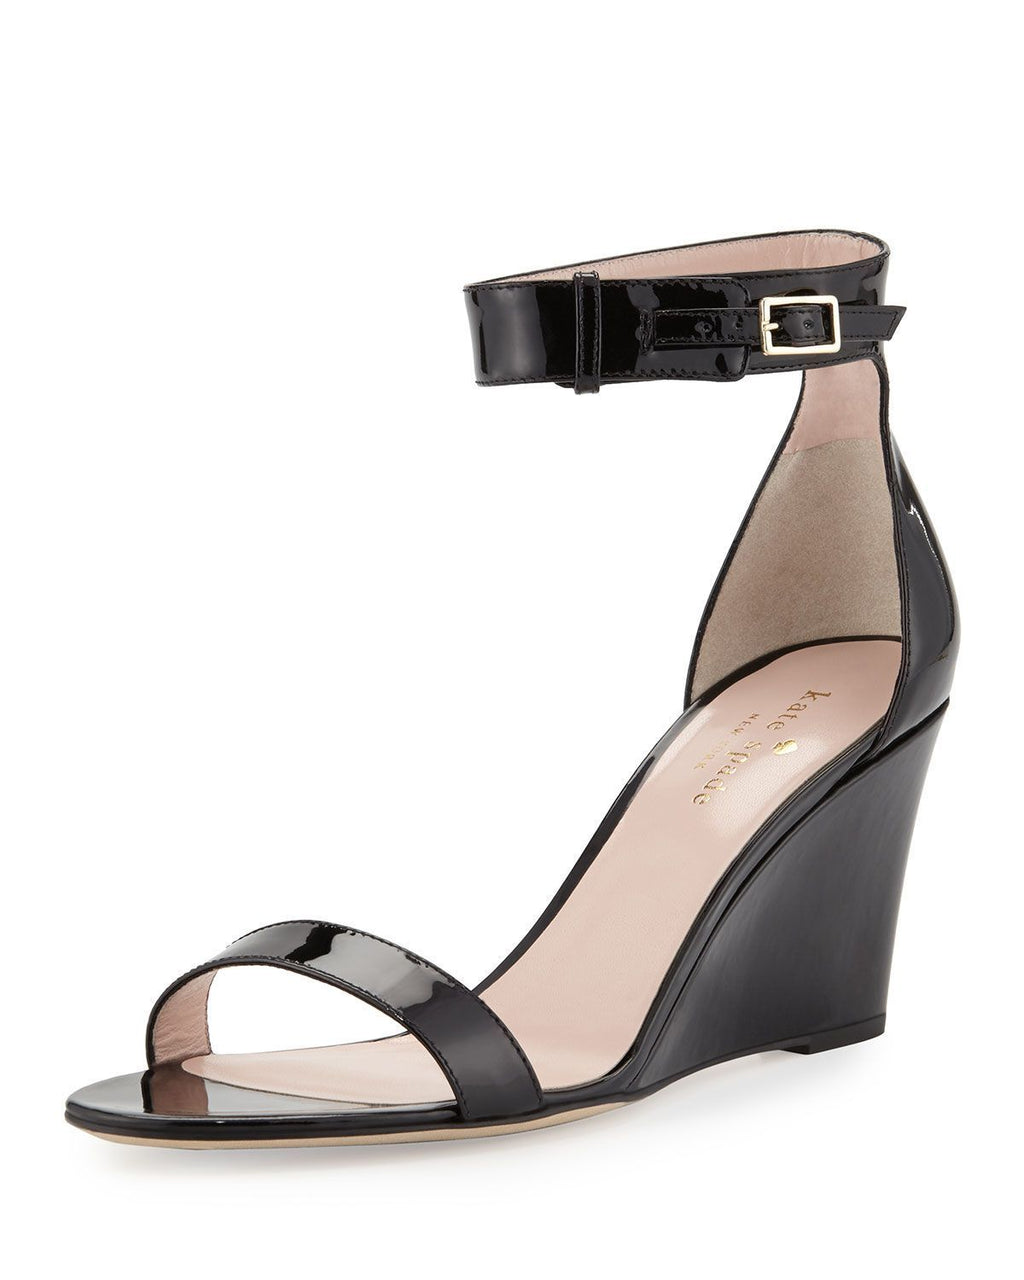 kate spade new york ronia wedge sandal